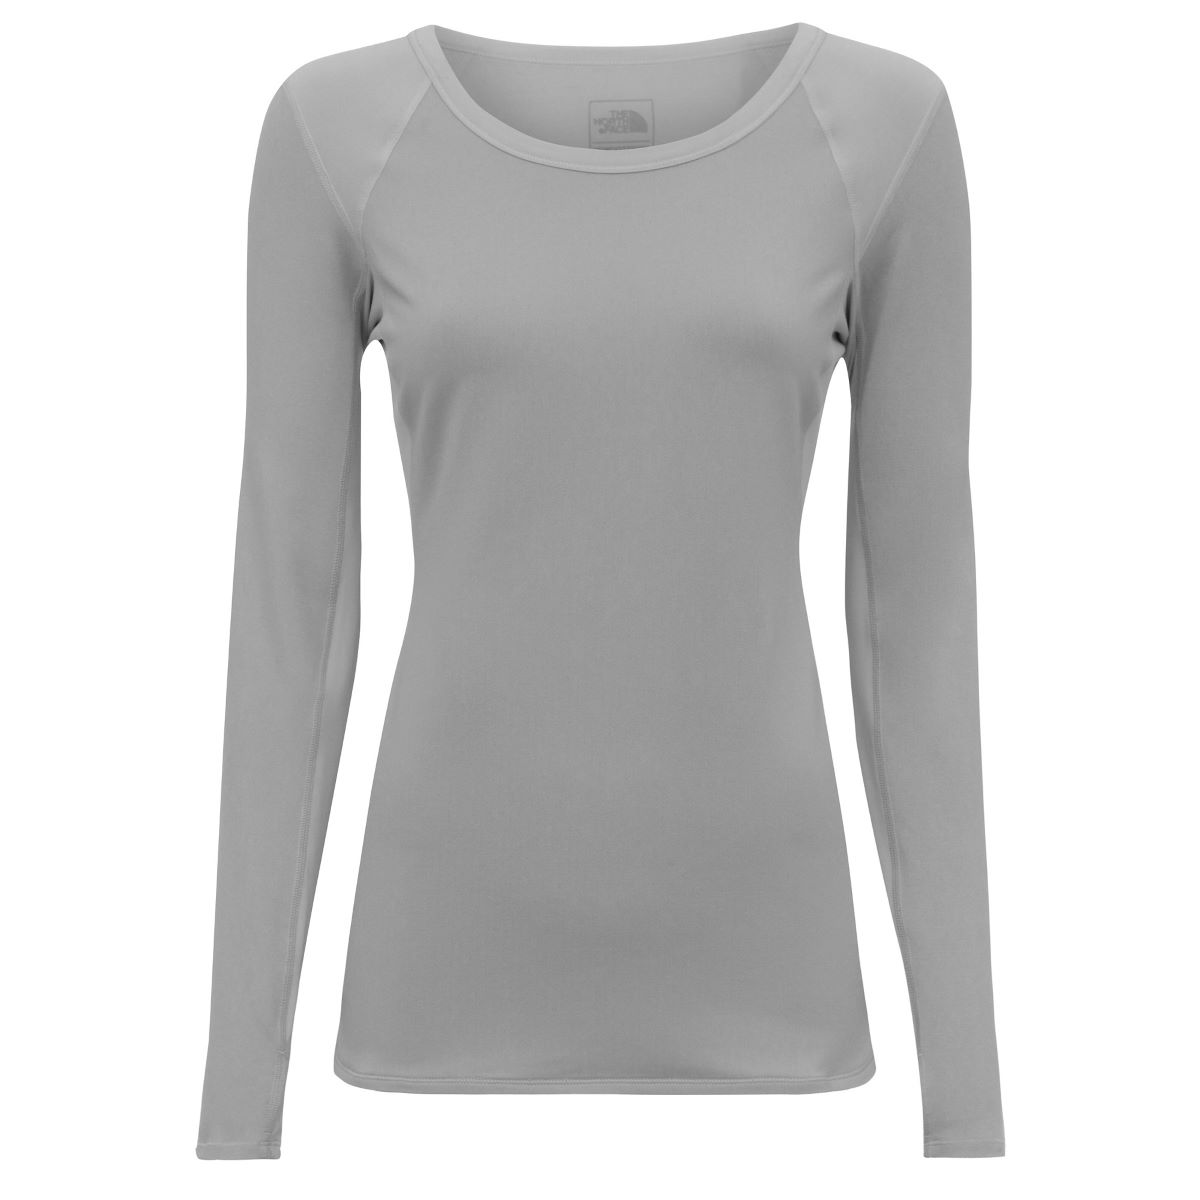 Maillot Femme The North Face Motivation (manches longues) - XS